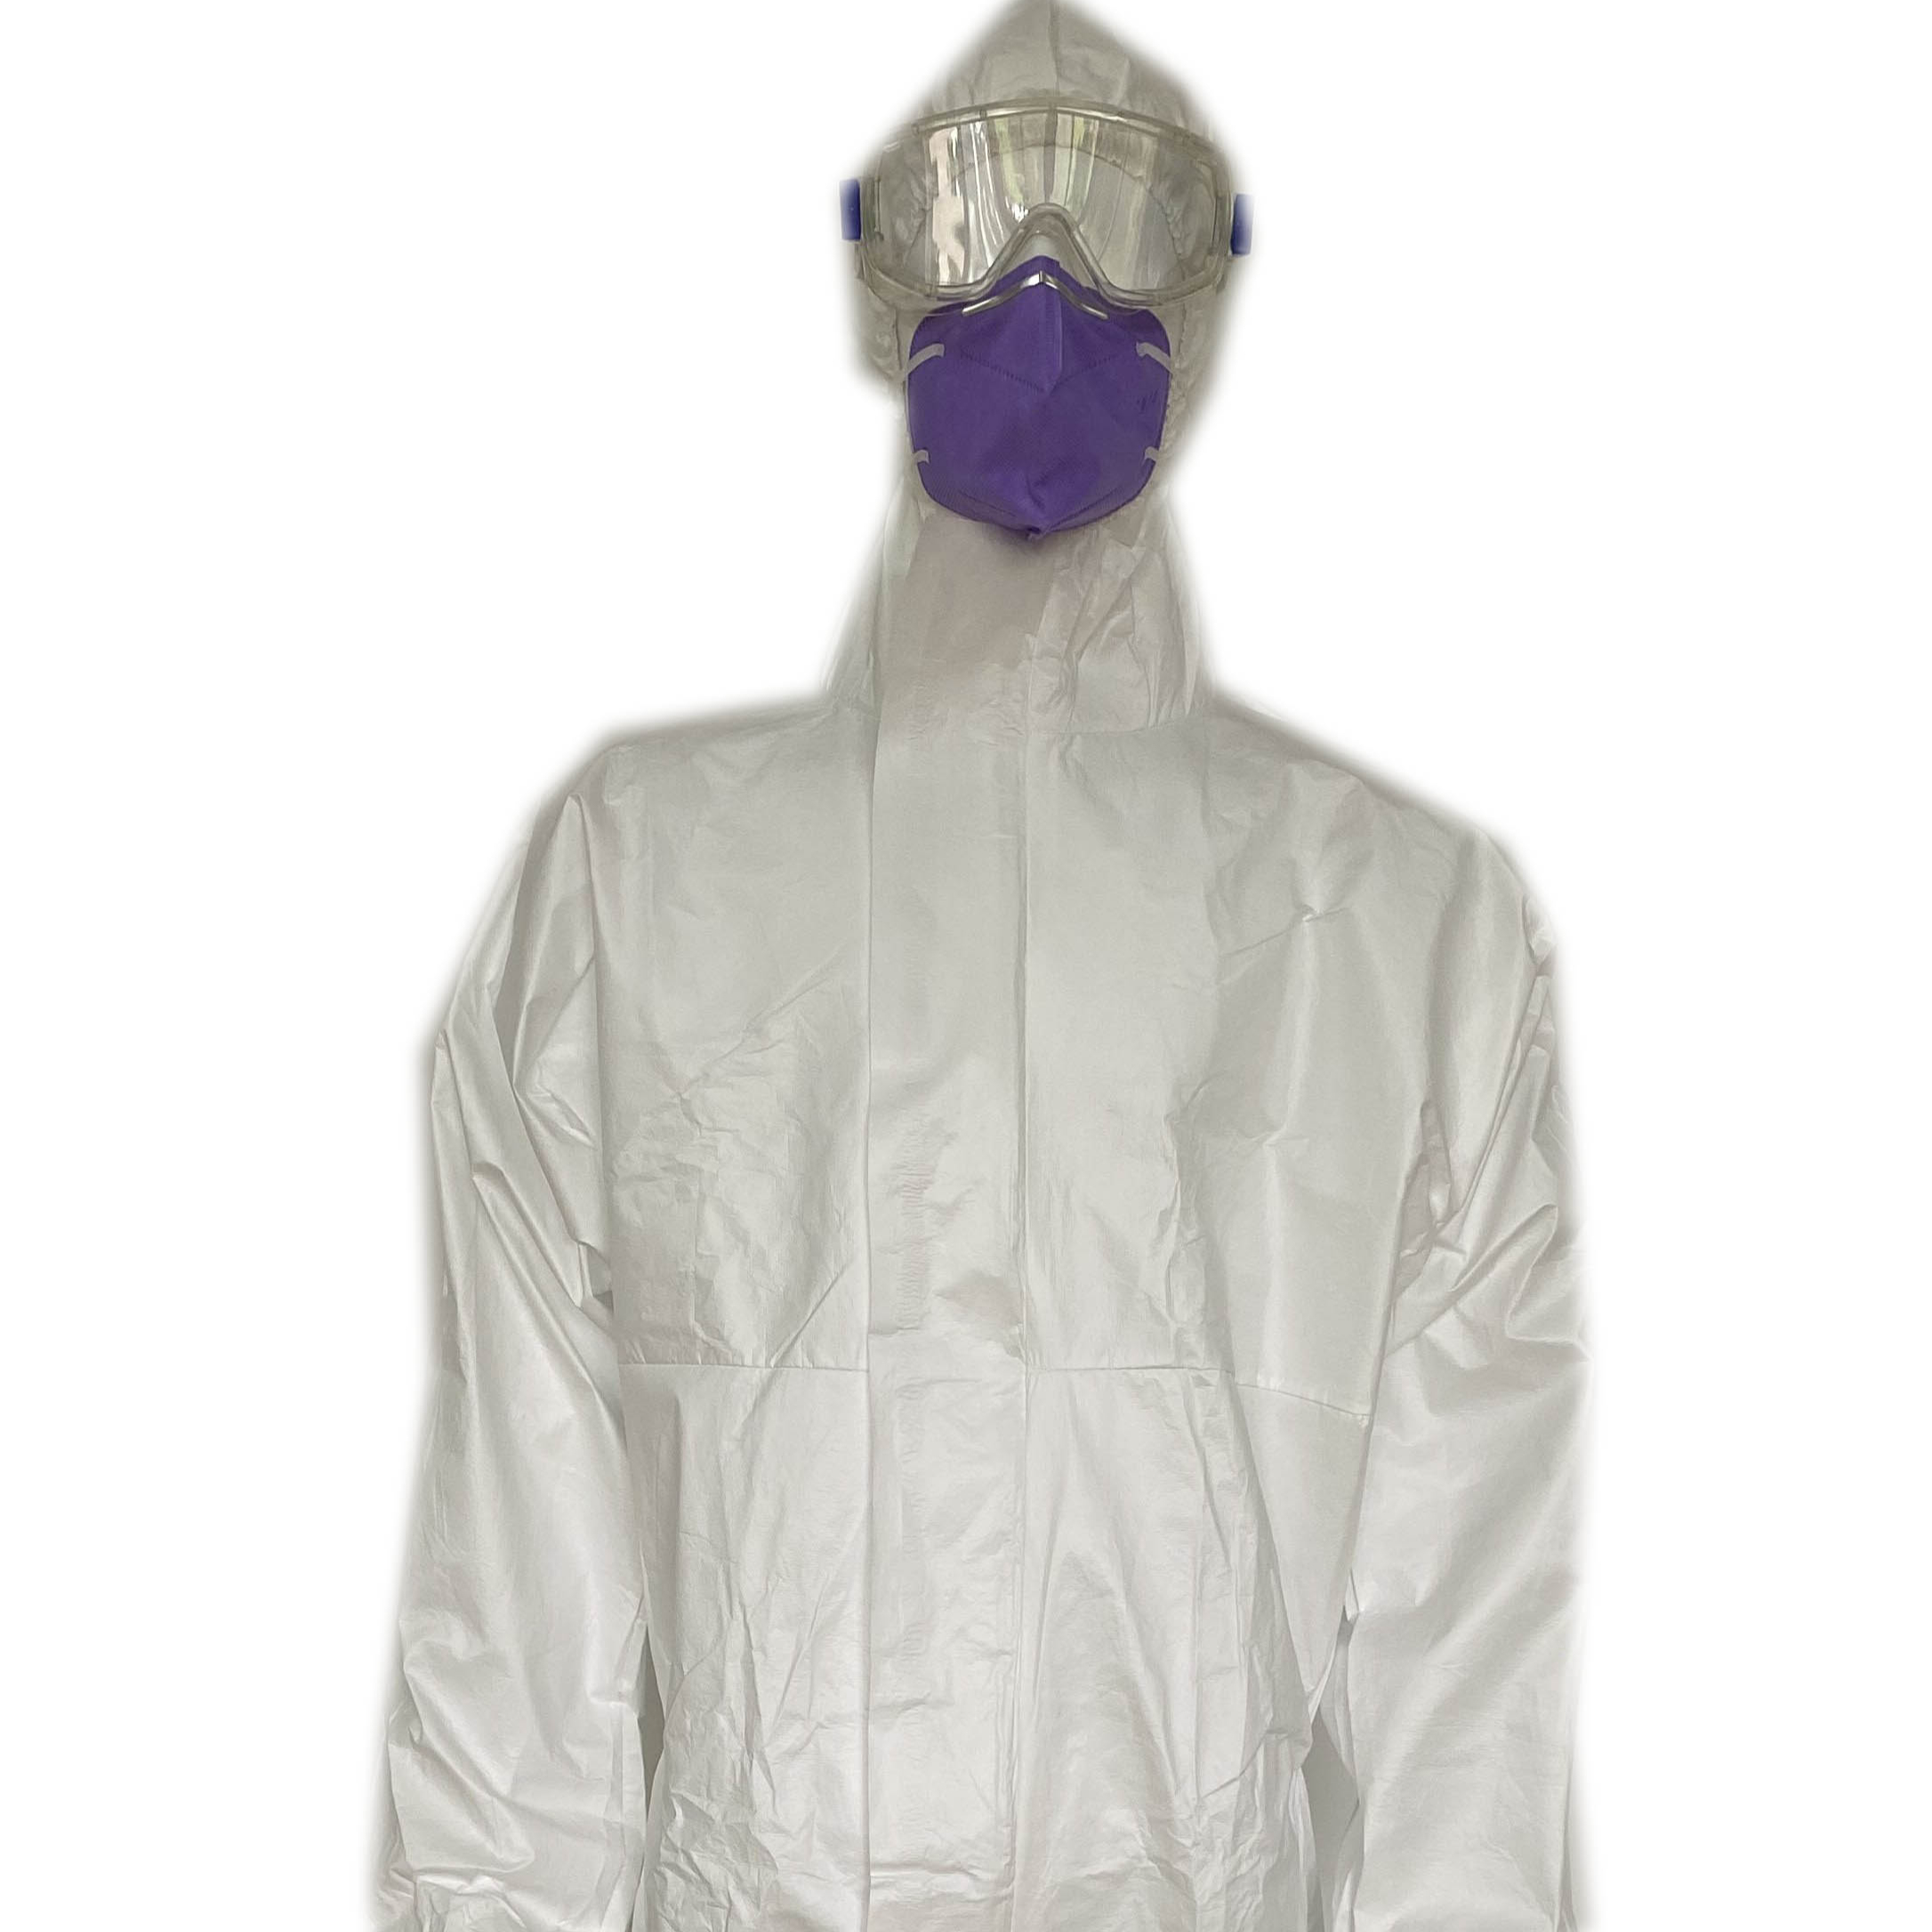 disposable non woven protective coverall waterproof working overalls safety protection clothing with hood and shoe cover - KingCare | KingCare.net